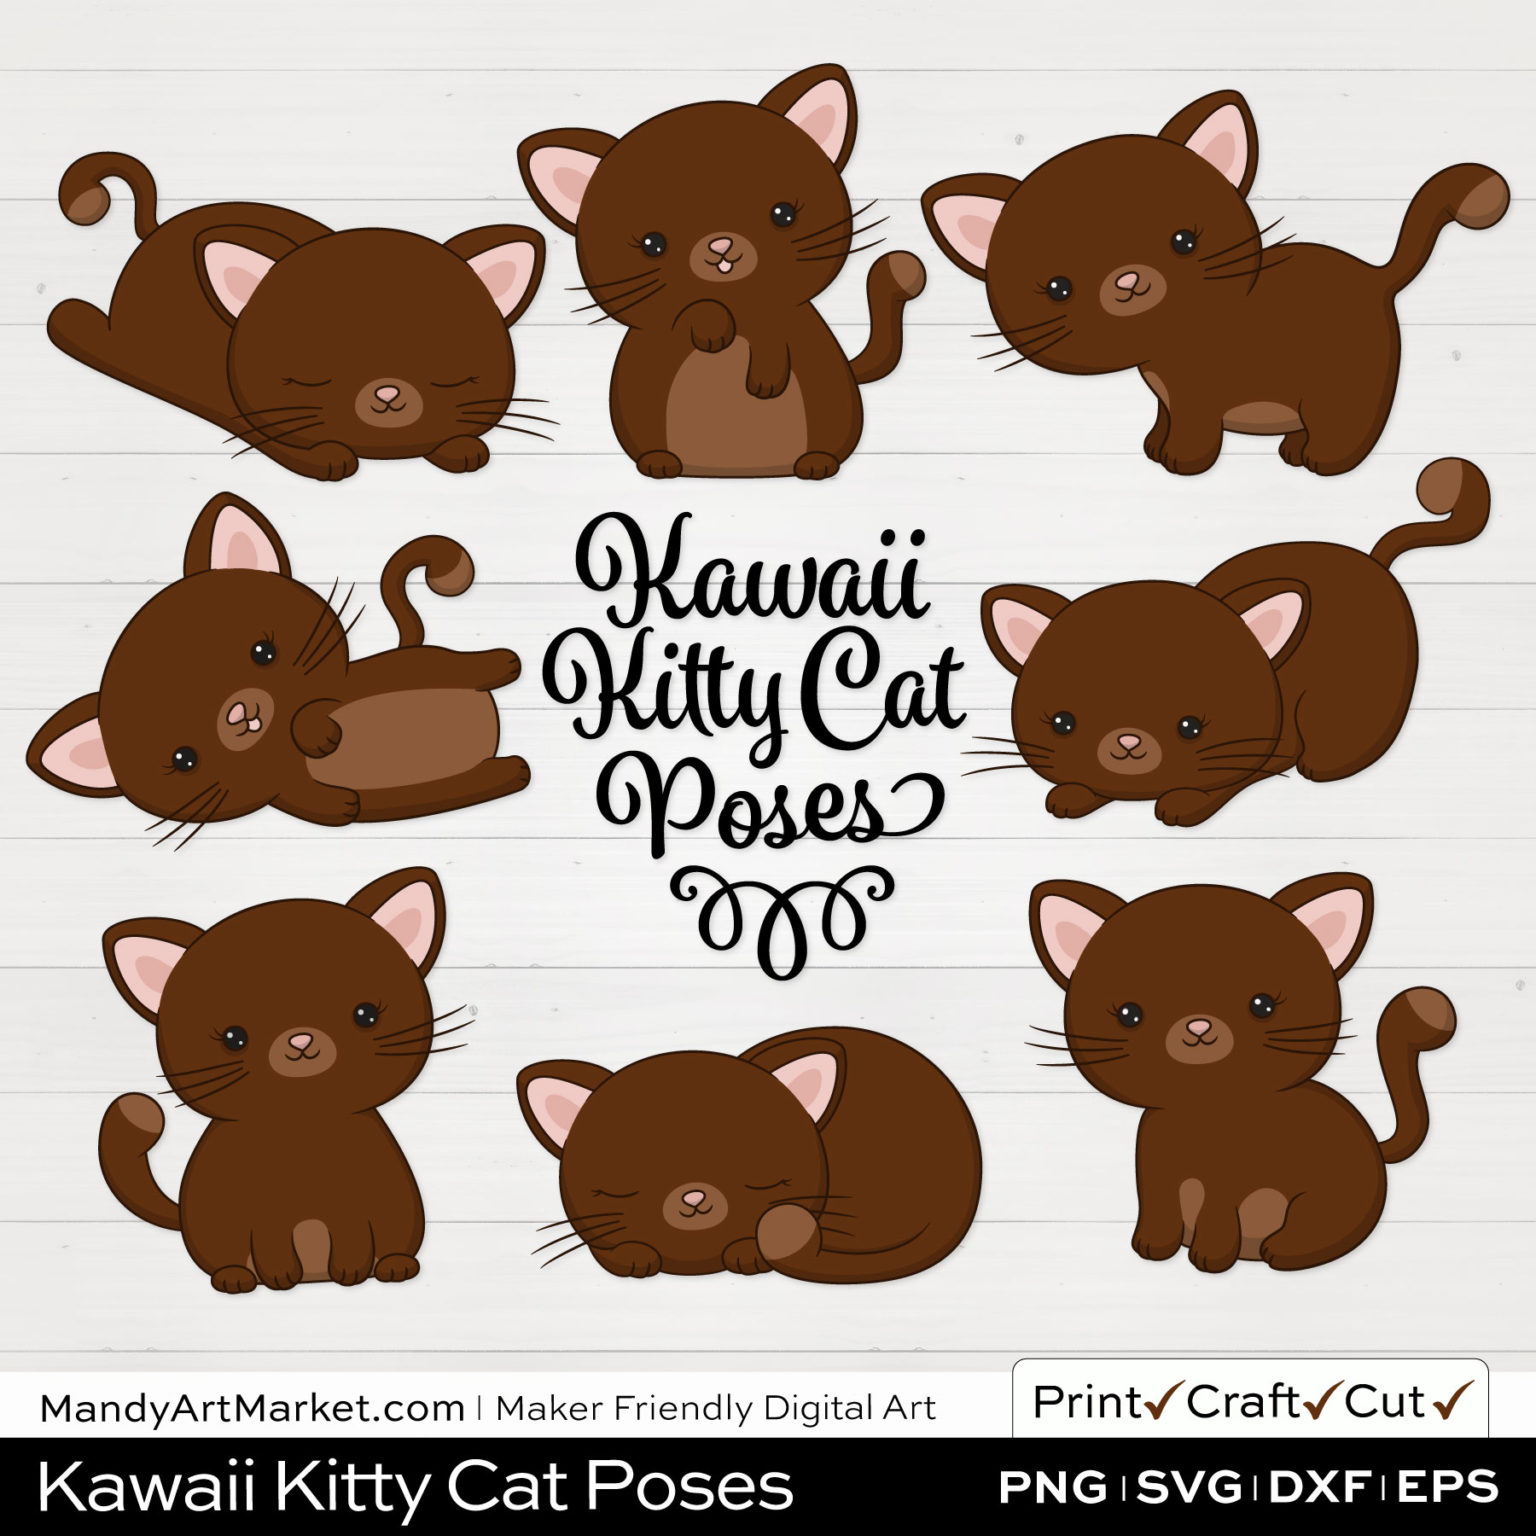 Dark Pecan Brown Kawaii Kitty Cat Poses Clipart on White Background